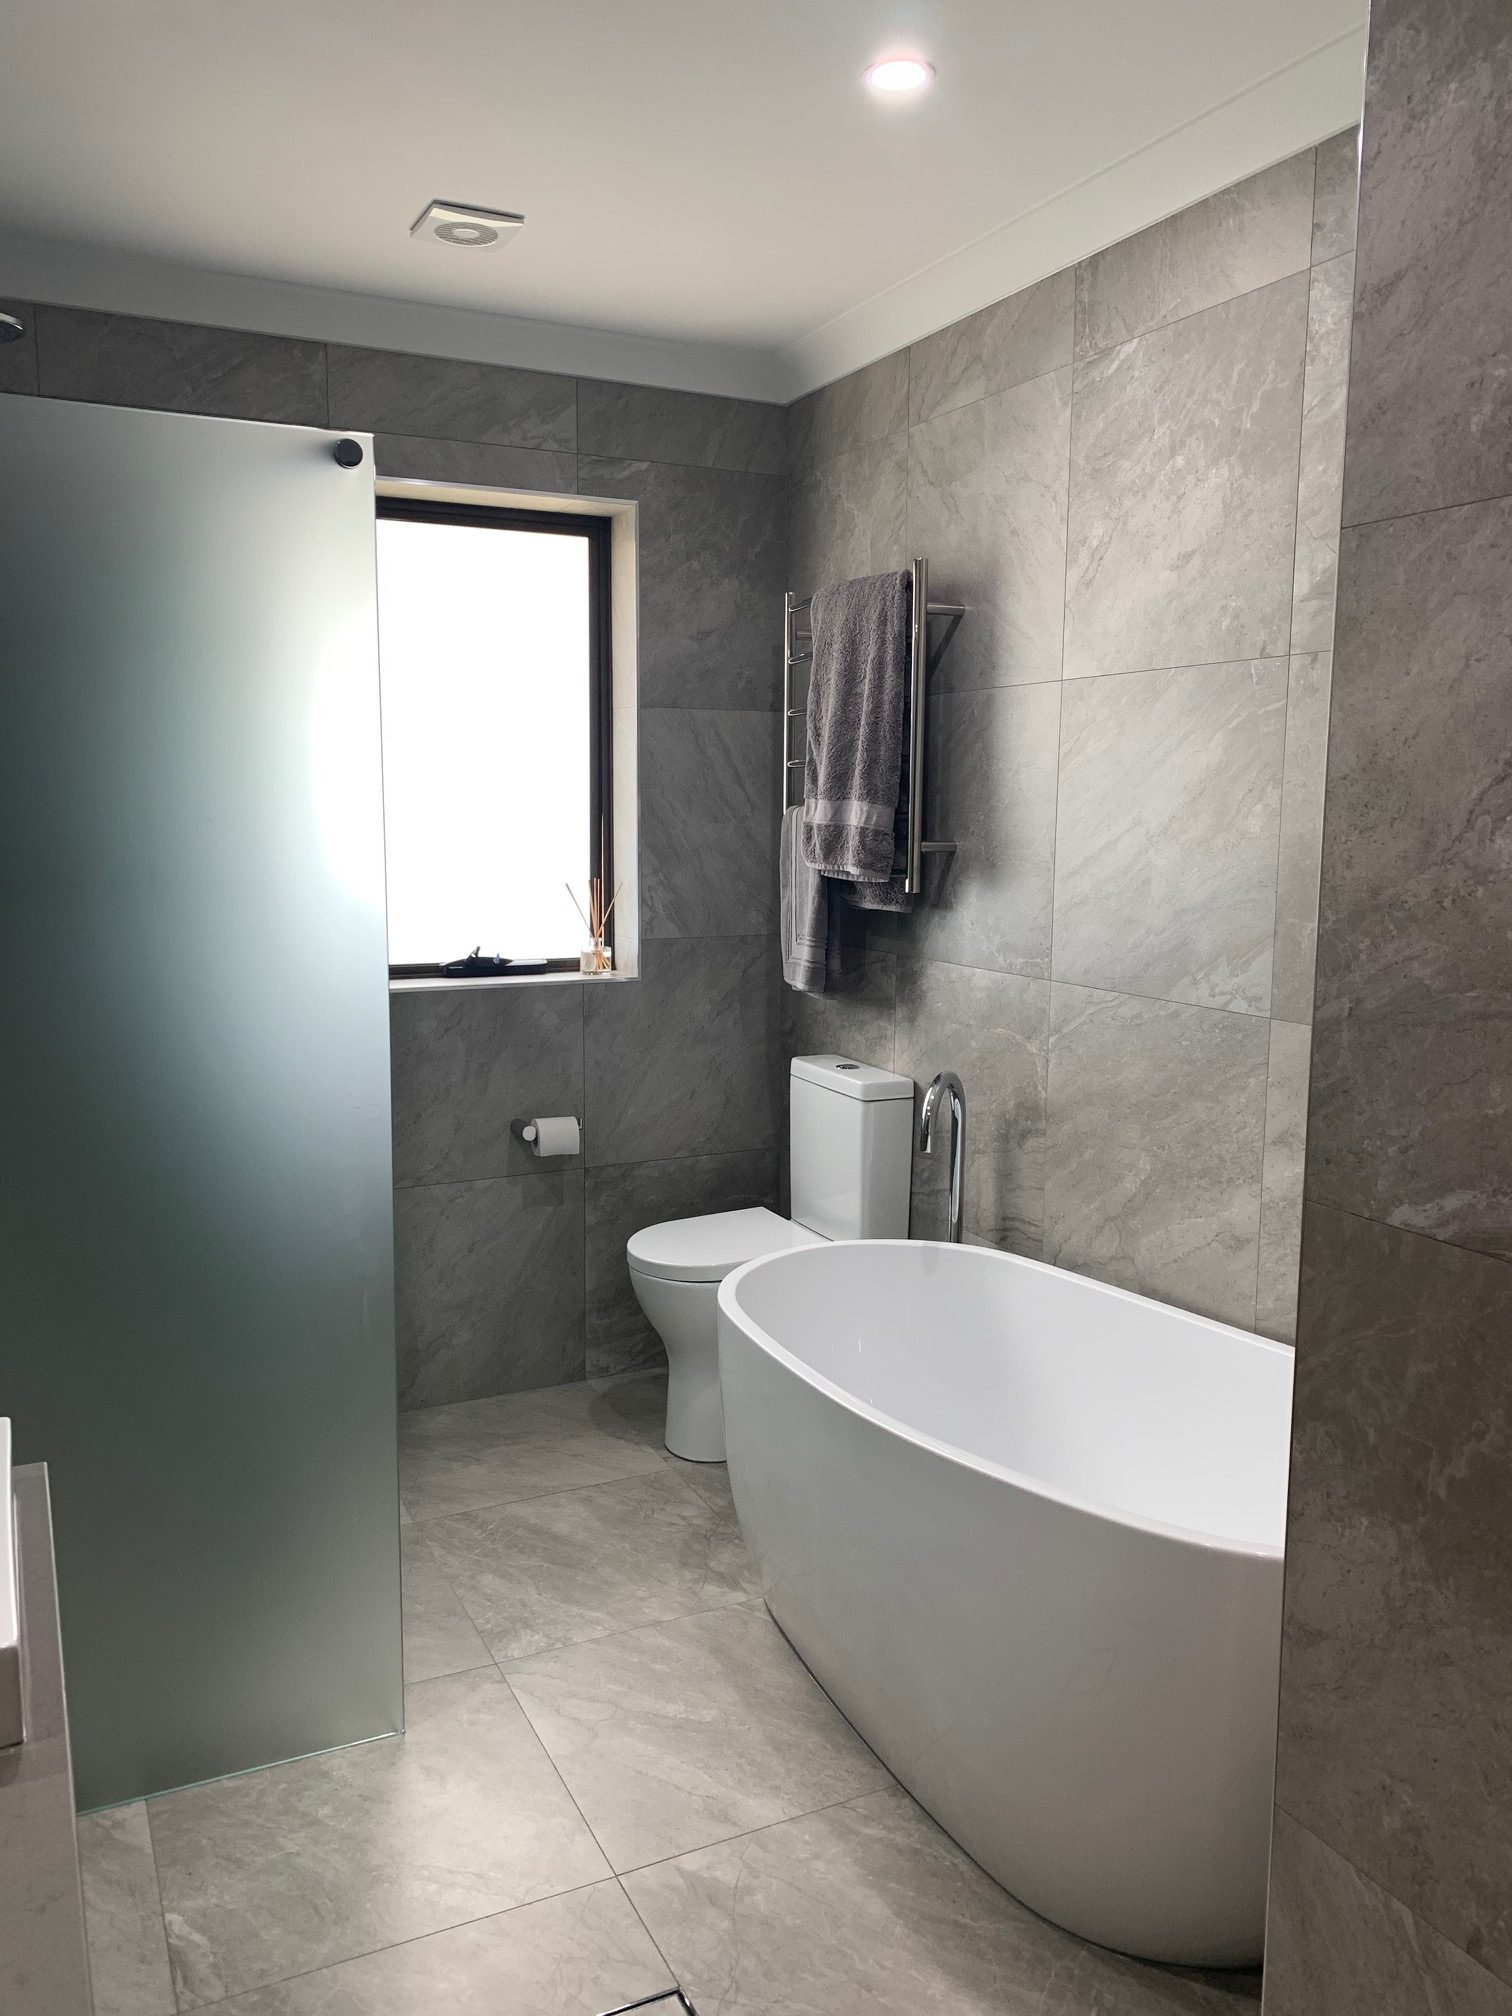 Bathroom completed with warmtech inscreed heating system